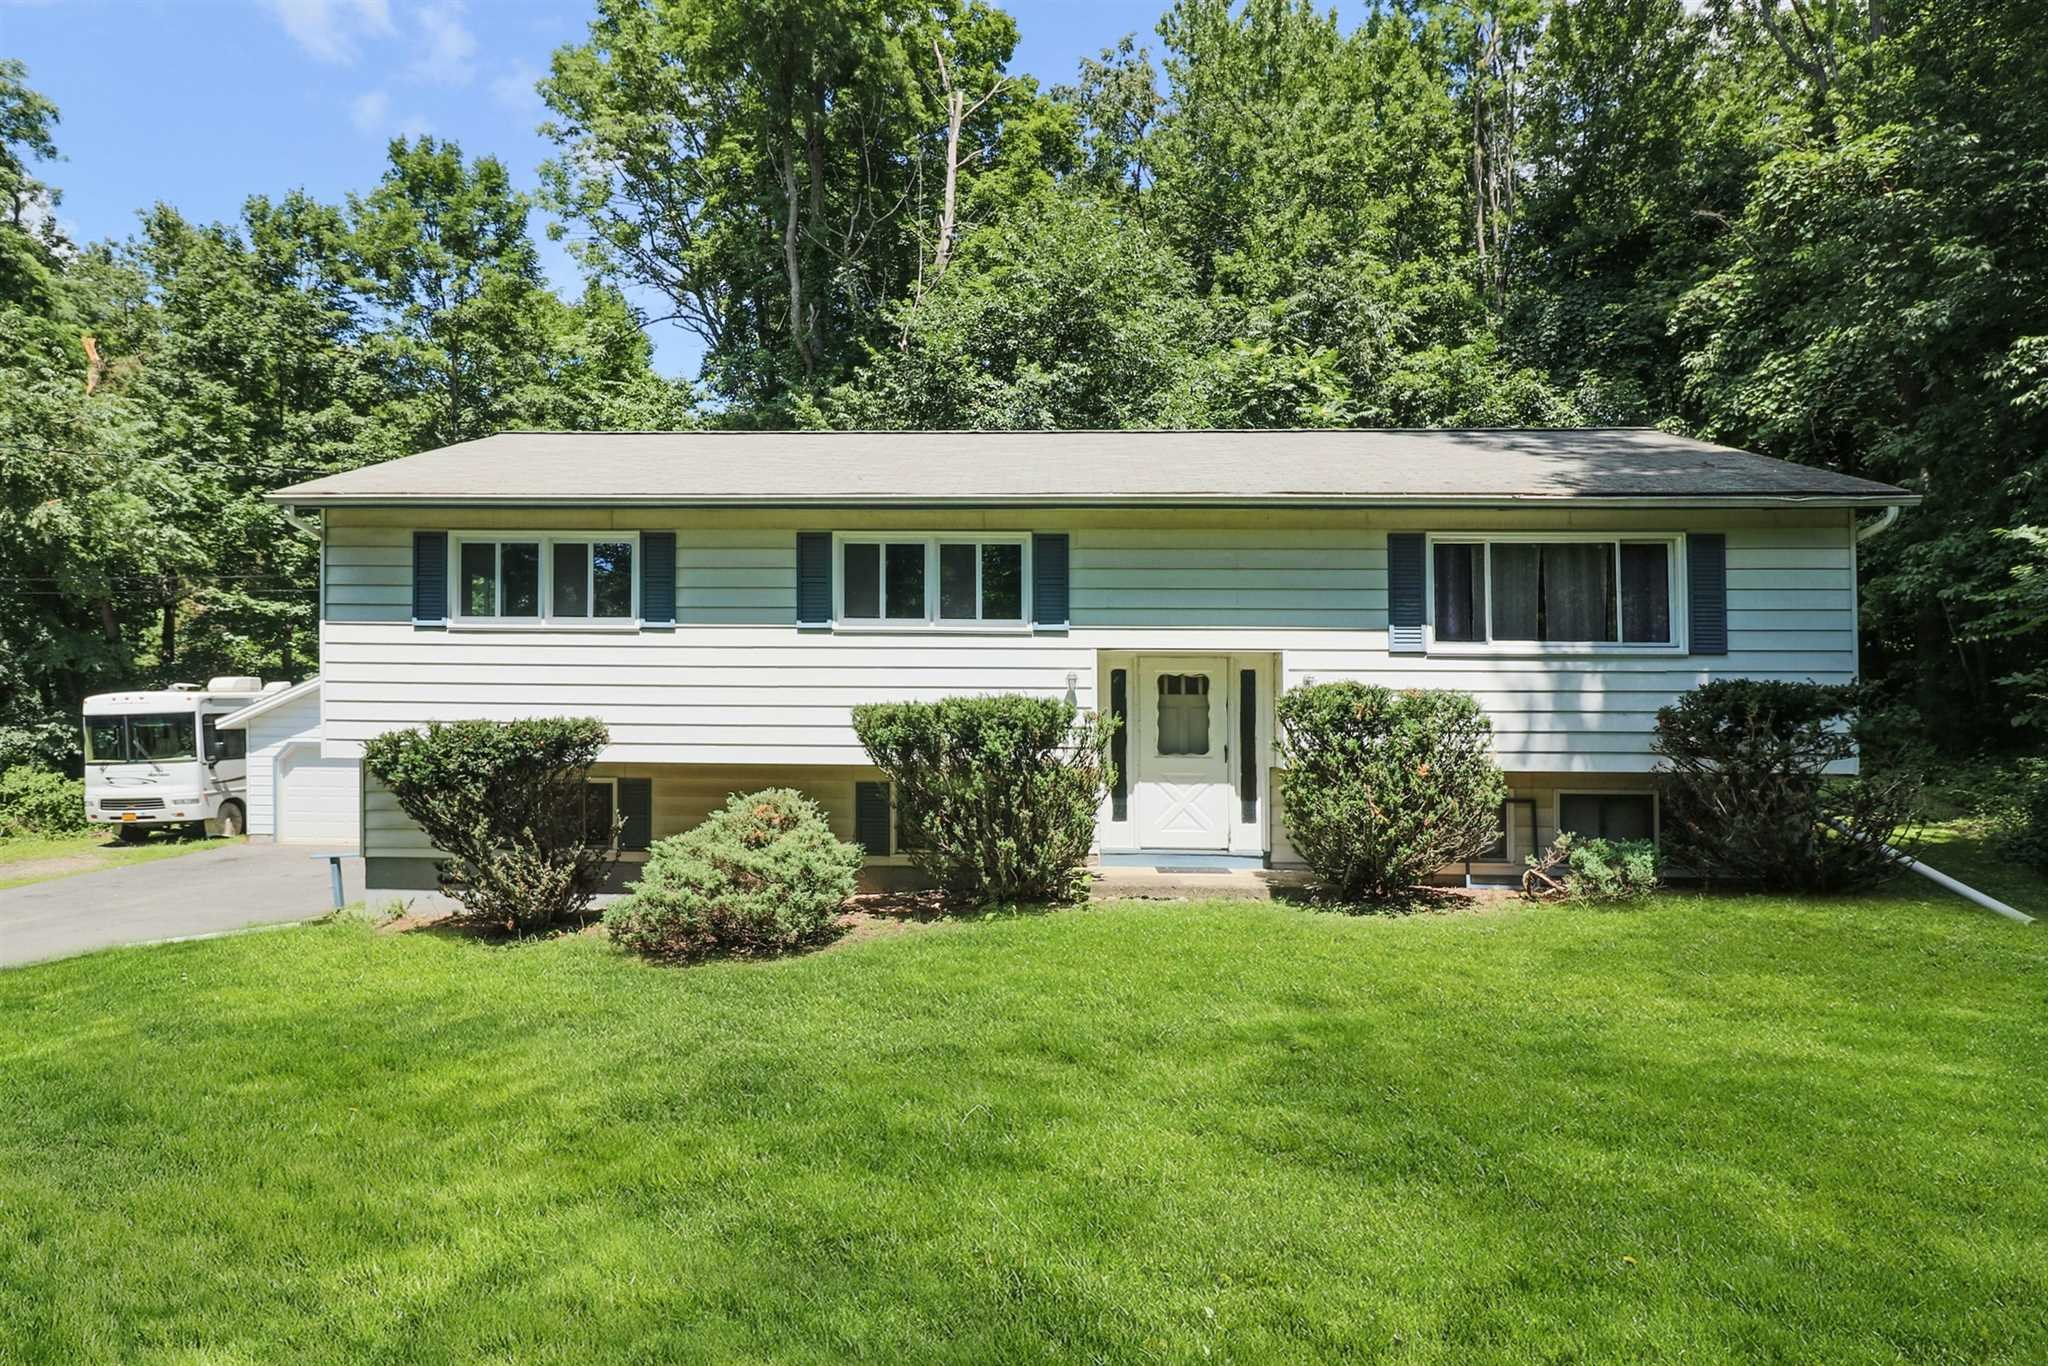 Single Family Home for Sale at 46 HILL AND HOLLOW Road 46 HILL AND HOLLOW Road Hyde Park, New York 12538 United States